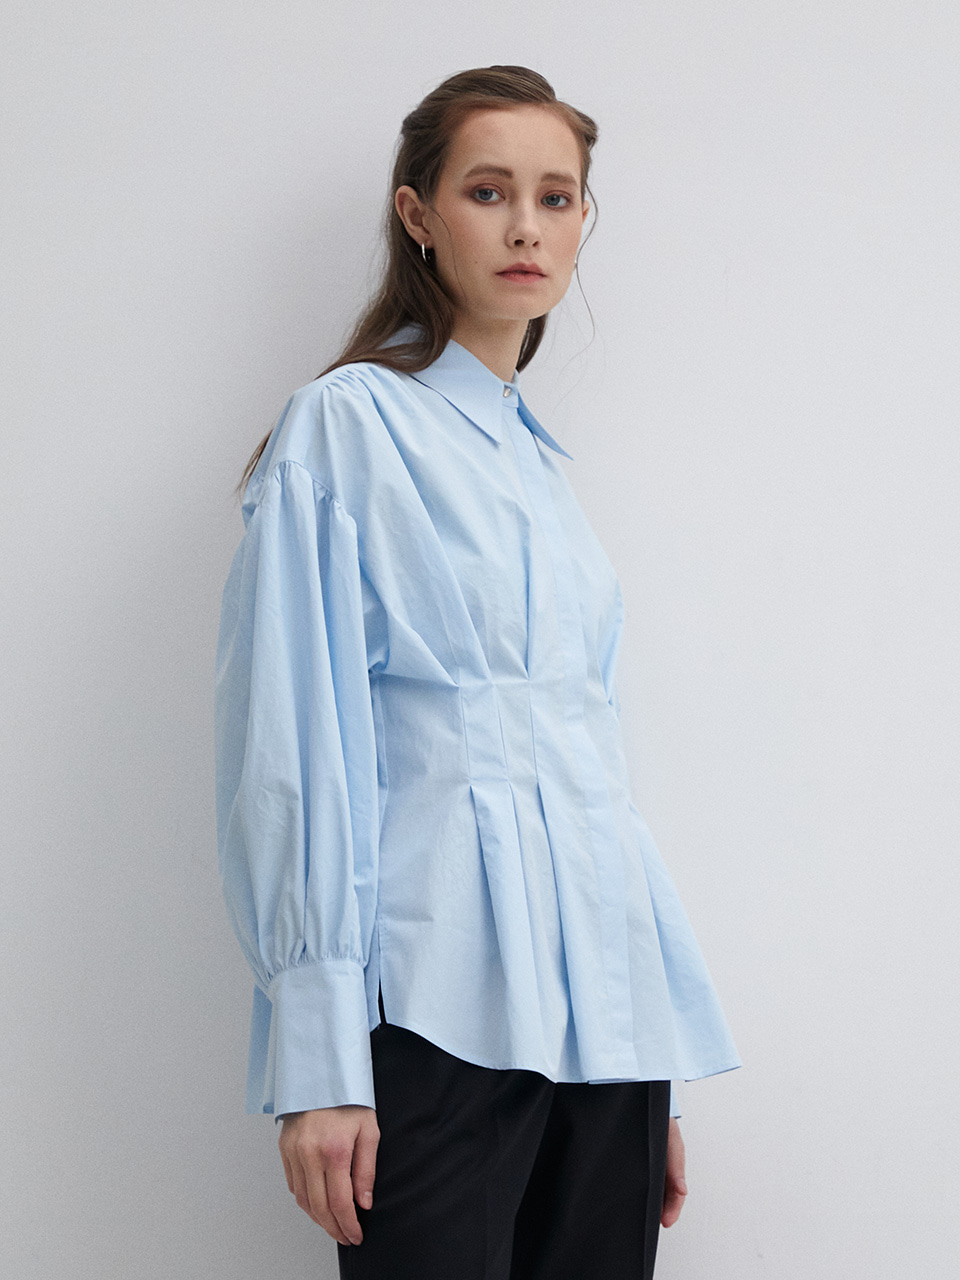 003 Volume Oversized Cotton Shirt - Light Blue